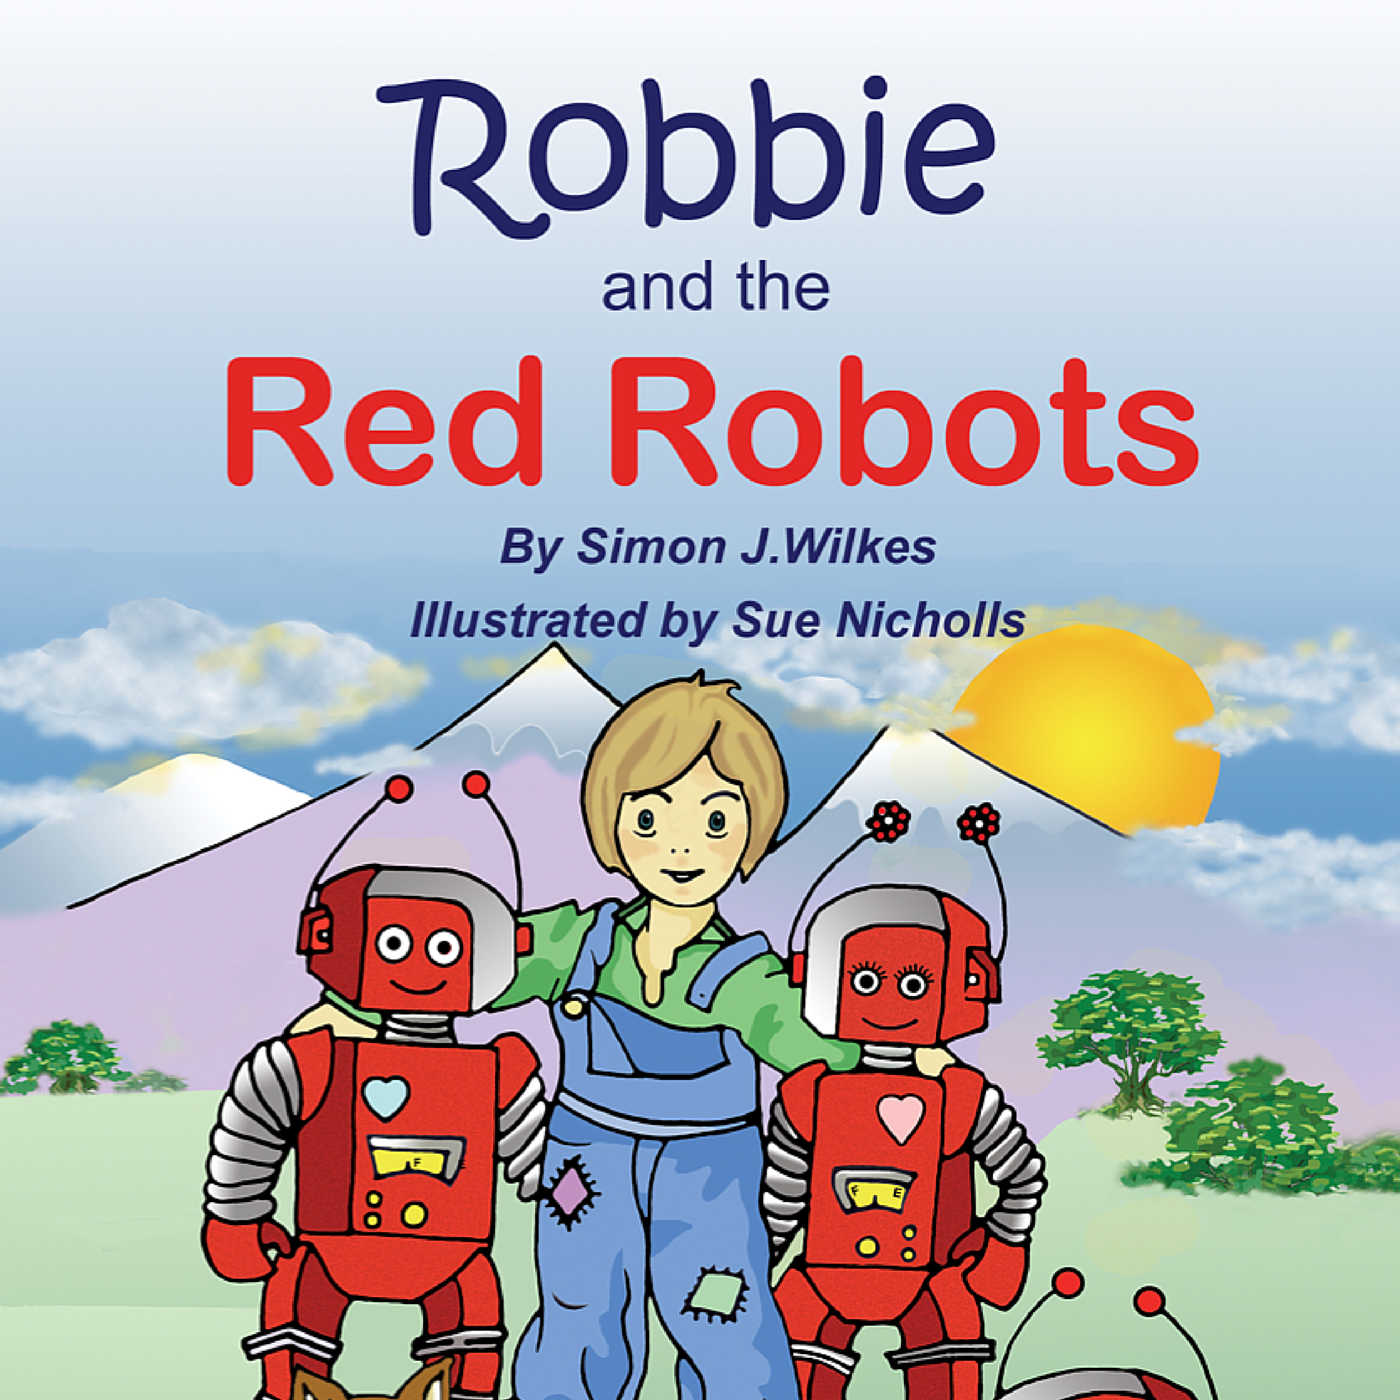 <![CDATA[Robbie and the Red Robots]]>